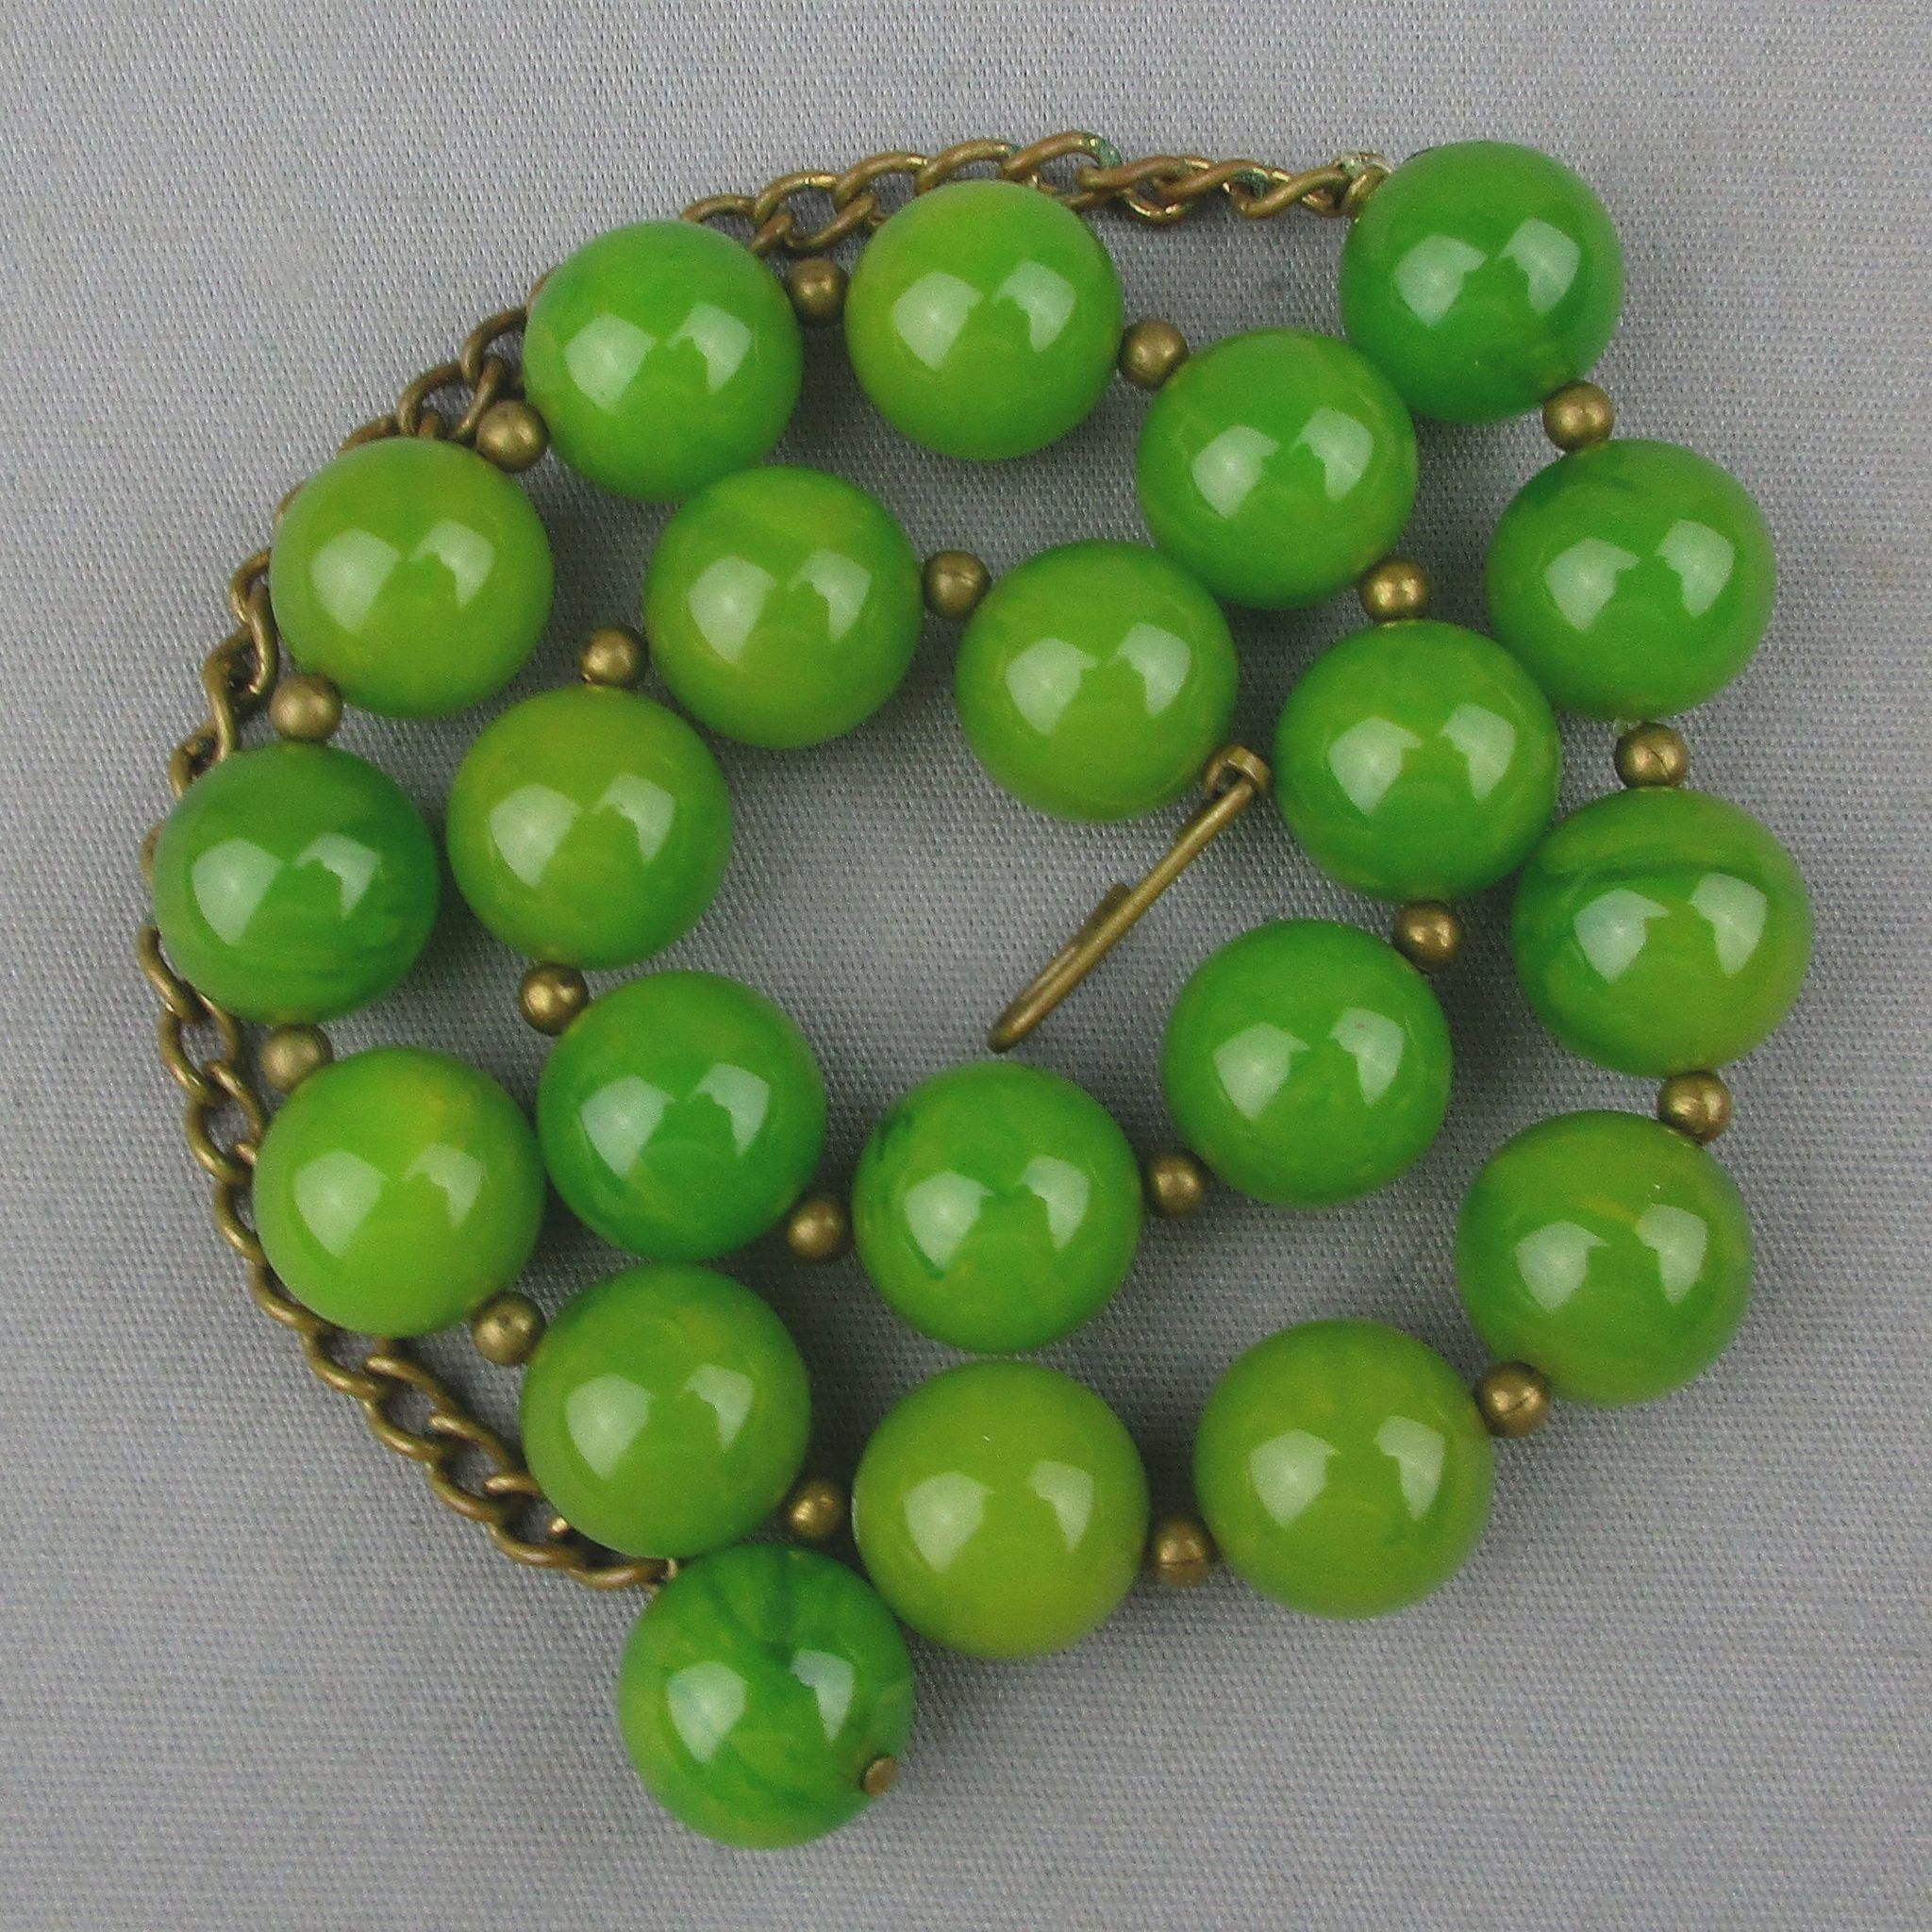 Old 1930s Bakelite Bead Choker Necklace Gorgeous Jadie Green